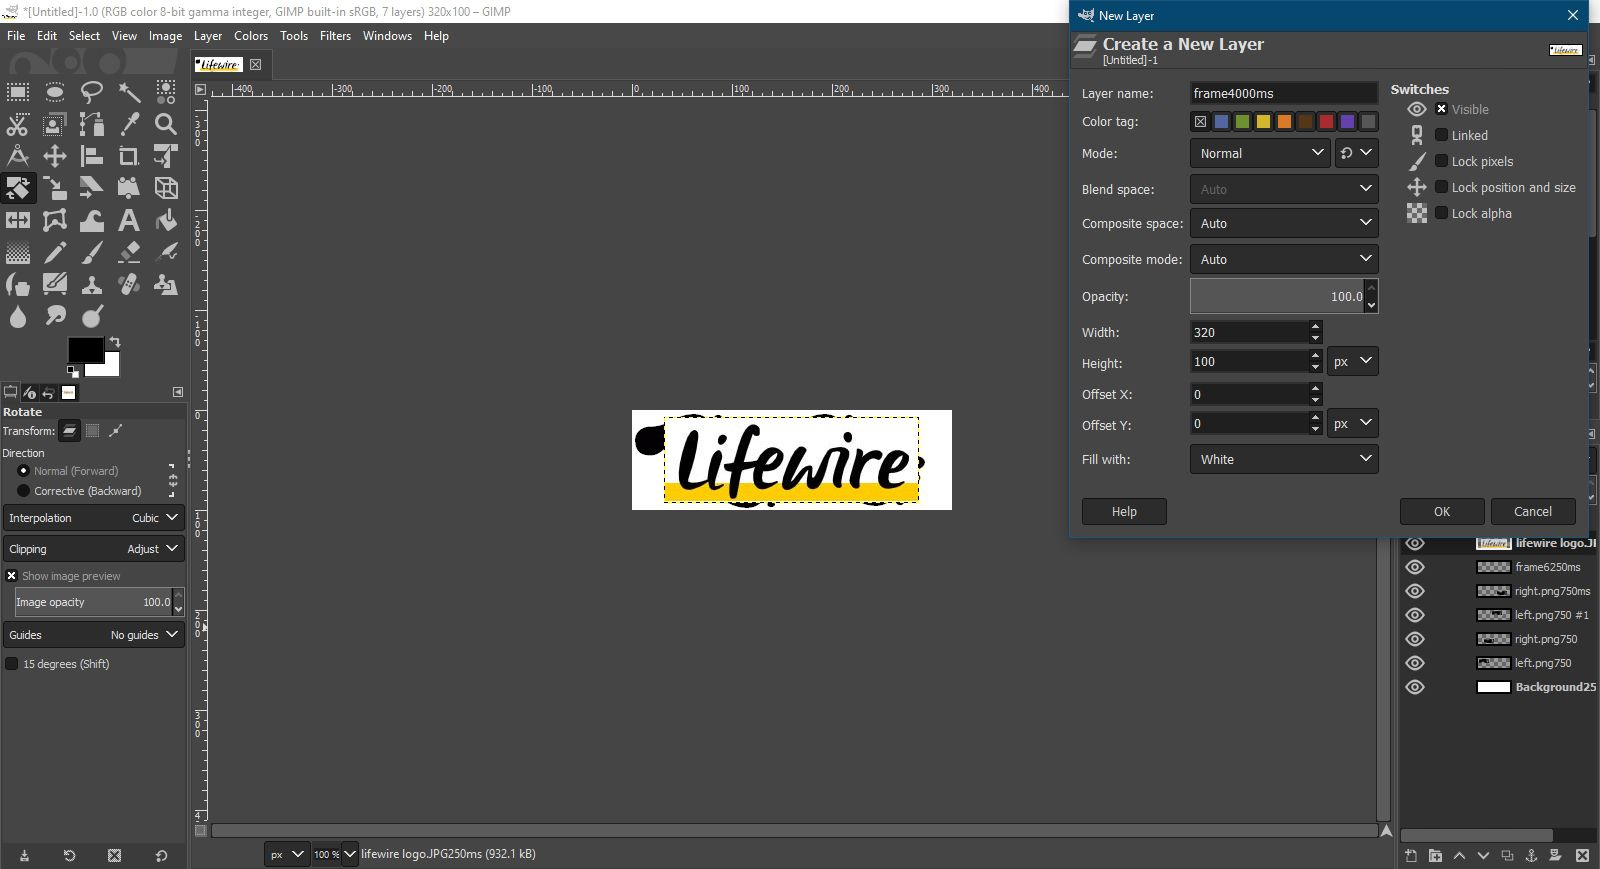 Adding the Lifewire logo to the animation in GIMP.